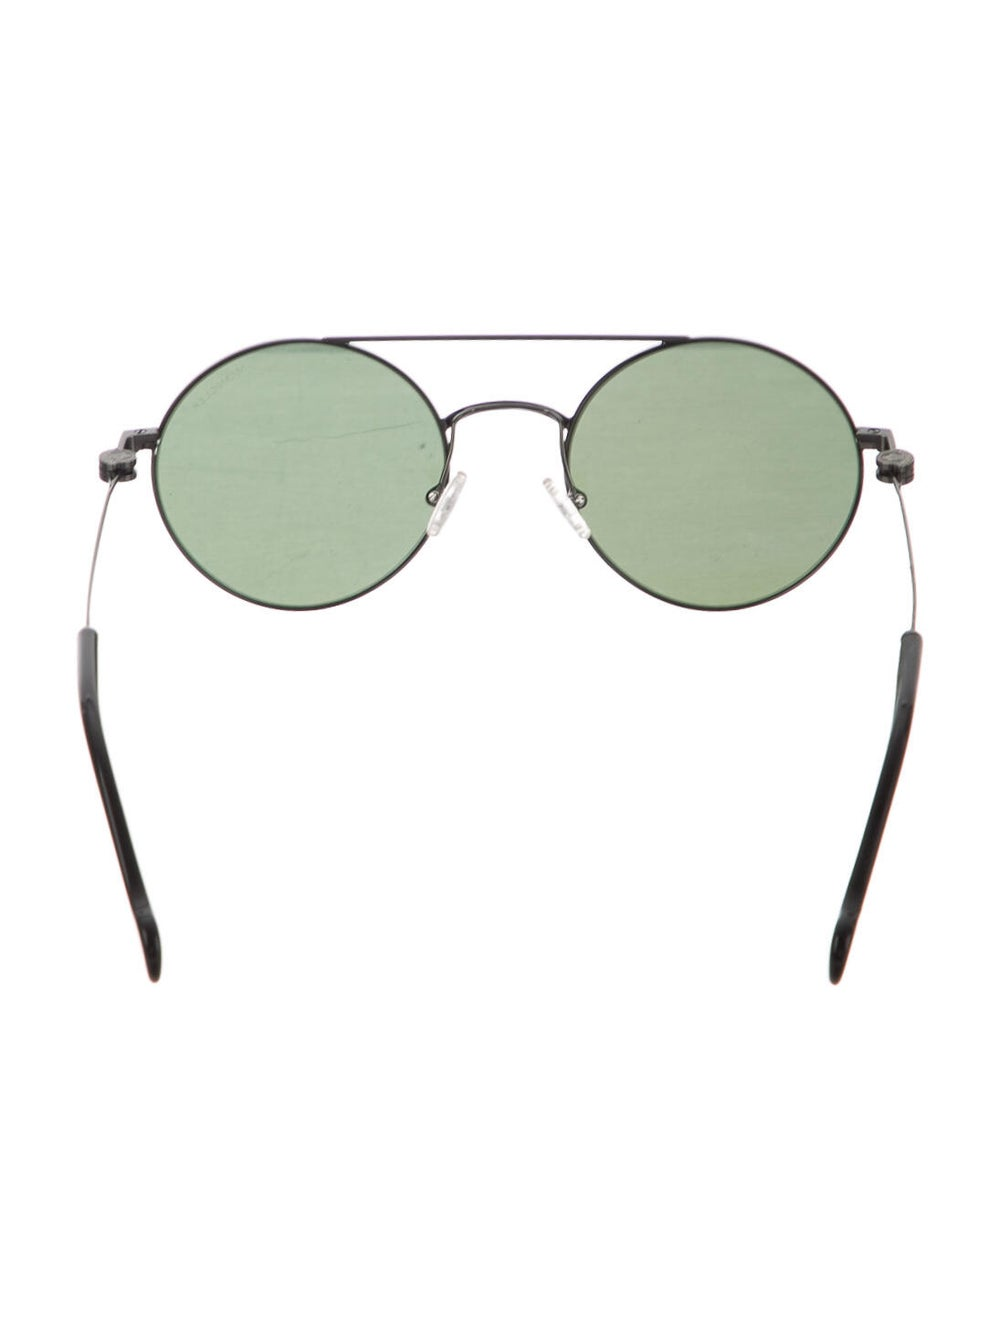 Moncler Round Tinted Sunglasses Silver - image 3